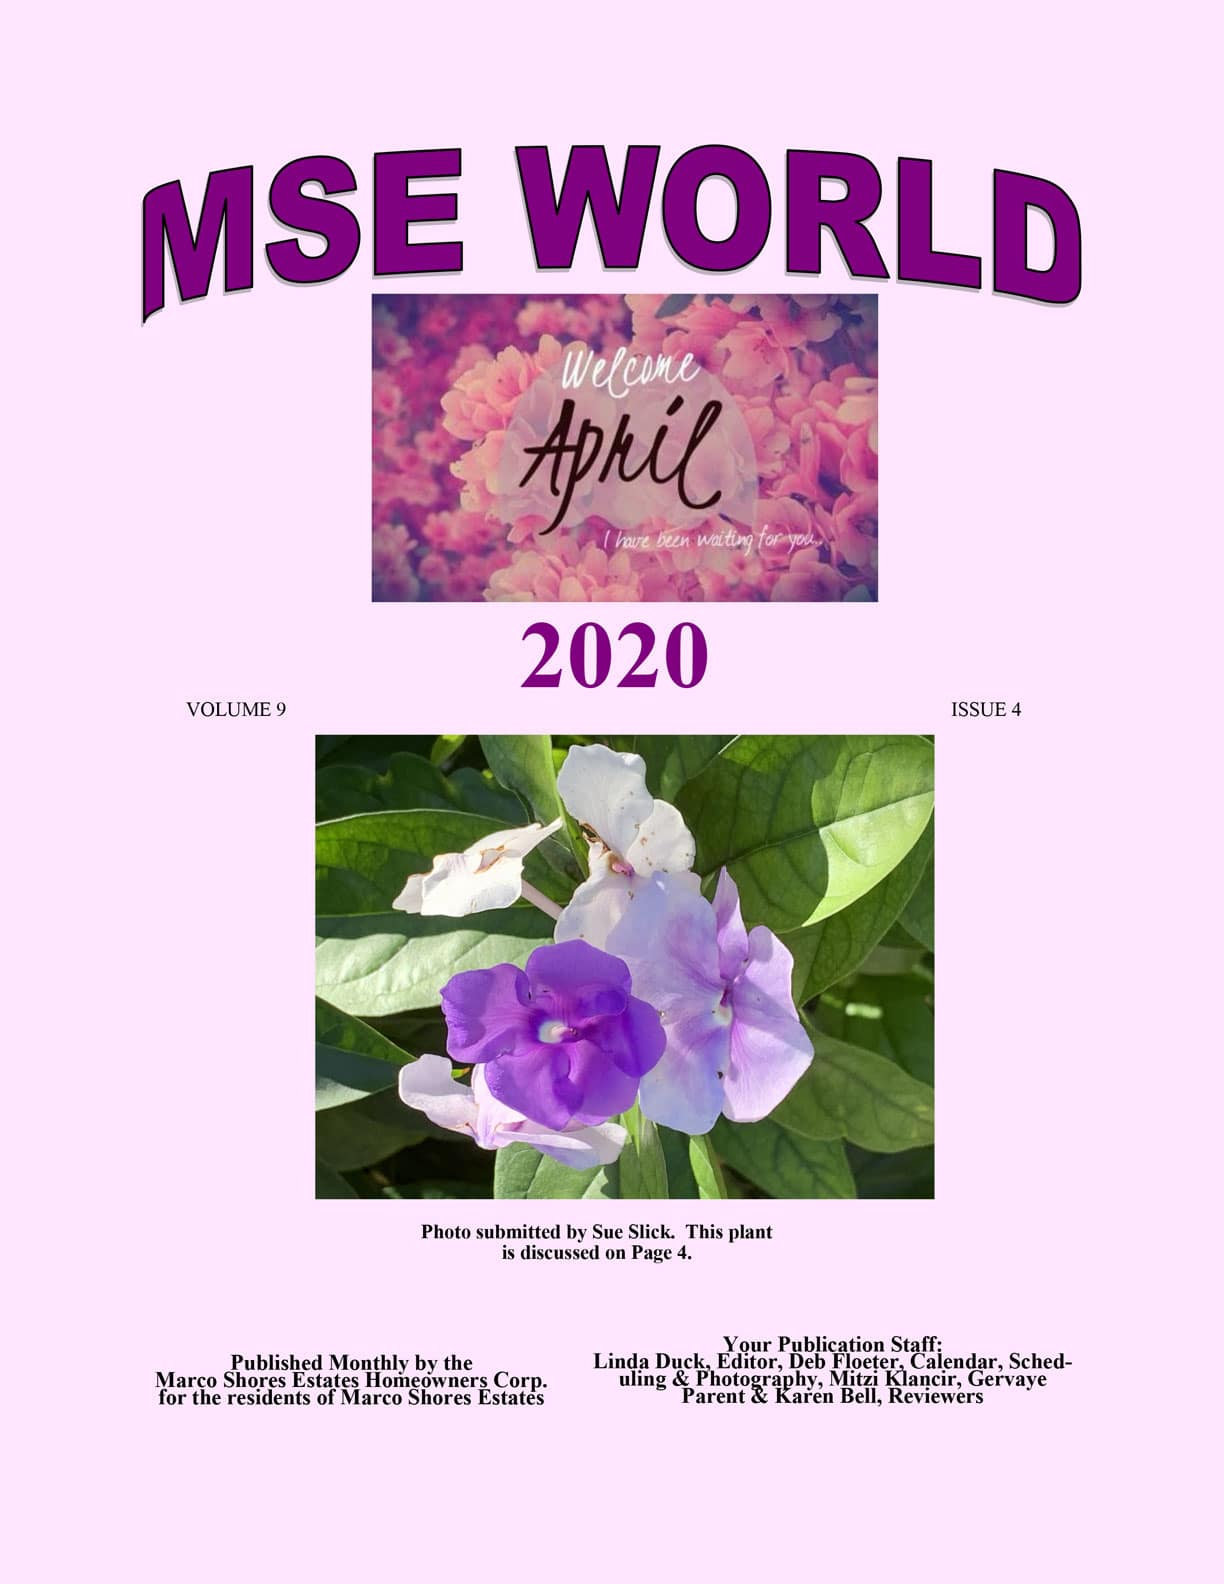 MSE World Apr 2020 Edition